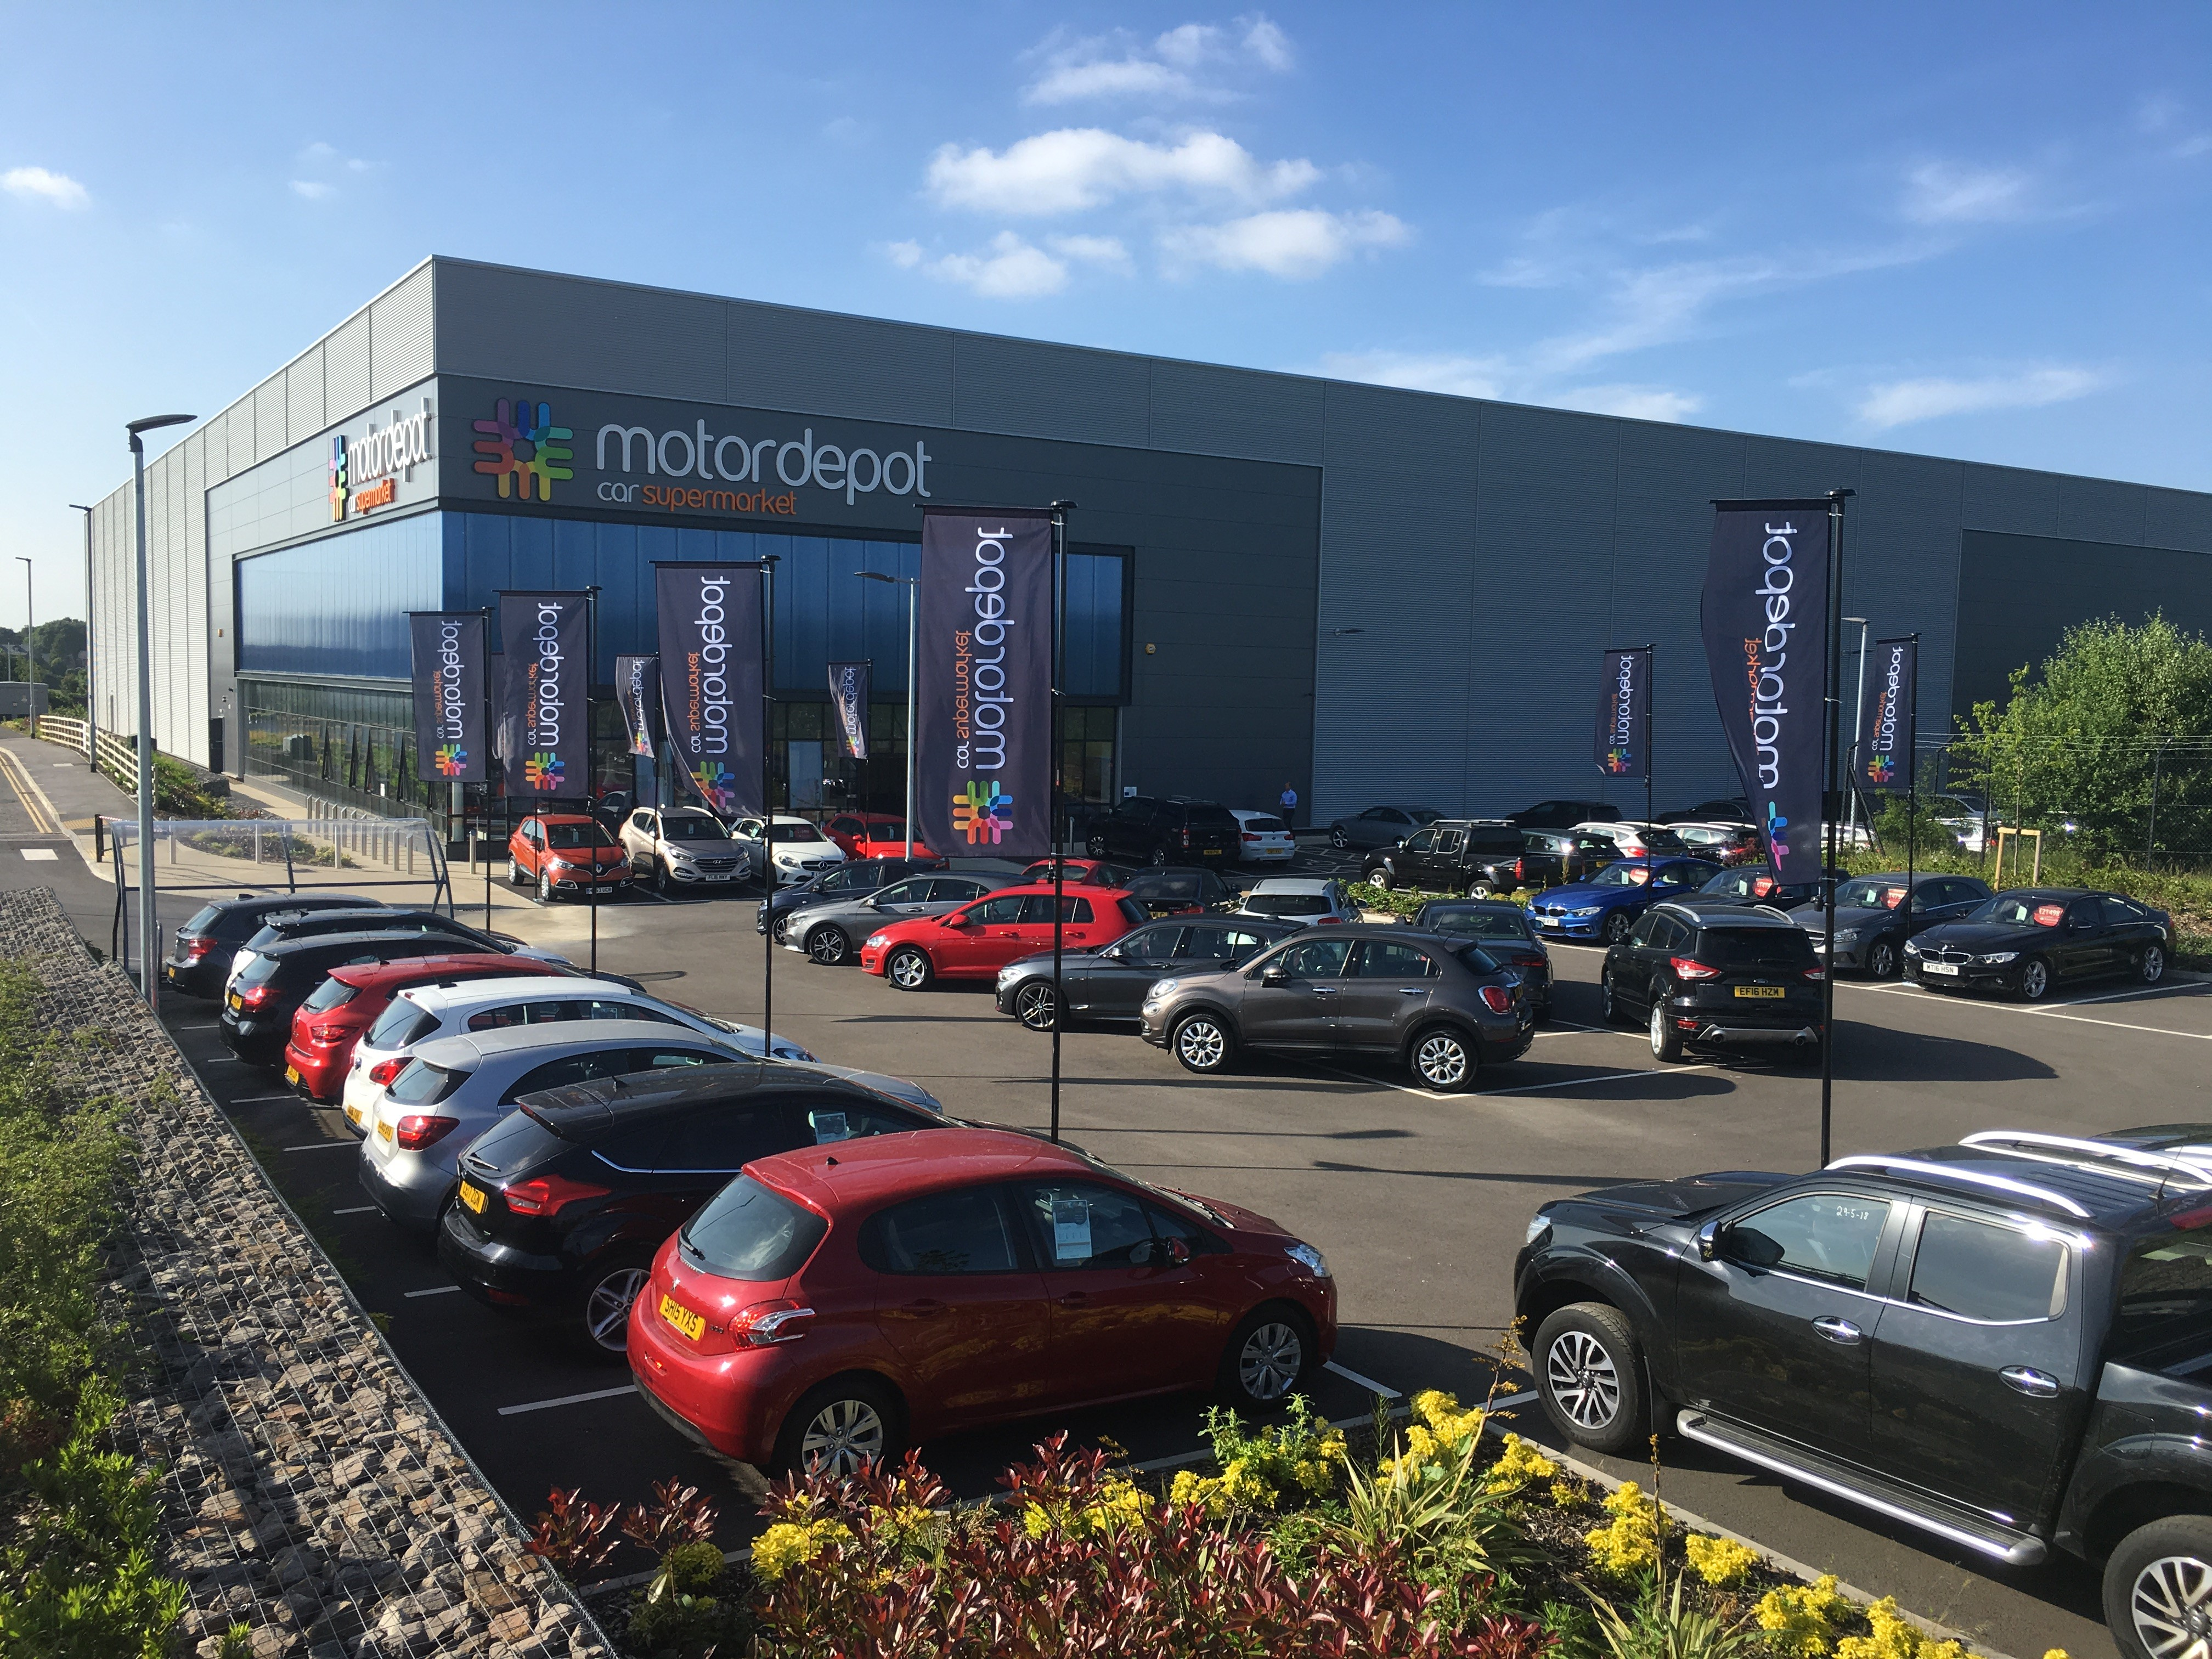 Motordepot Opens In Barnsley With Up To 40 New Jobs Created